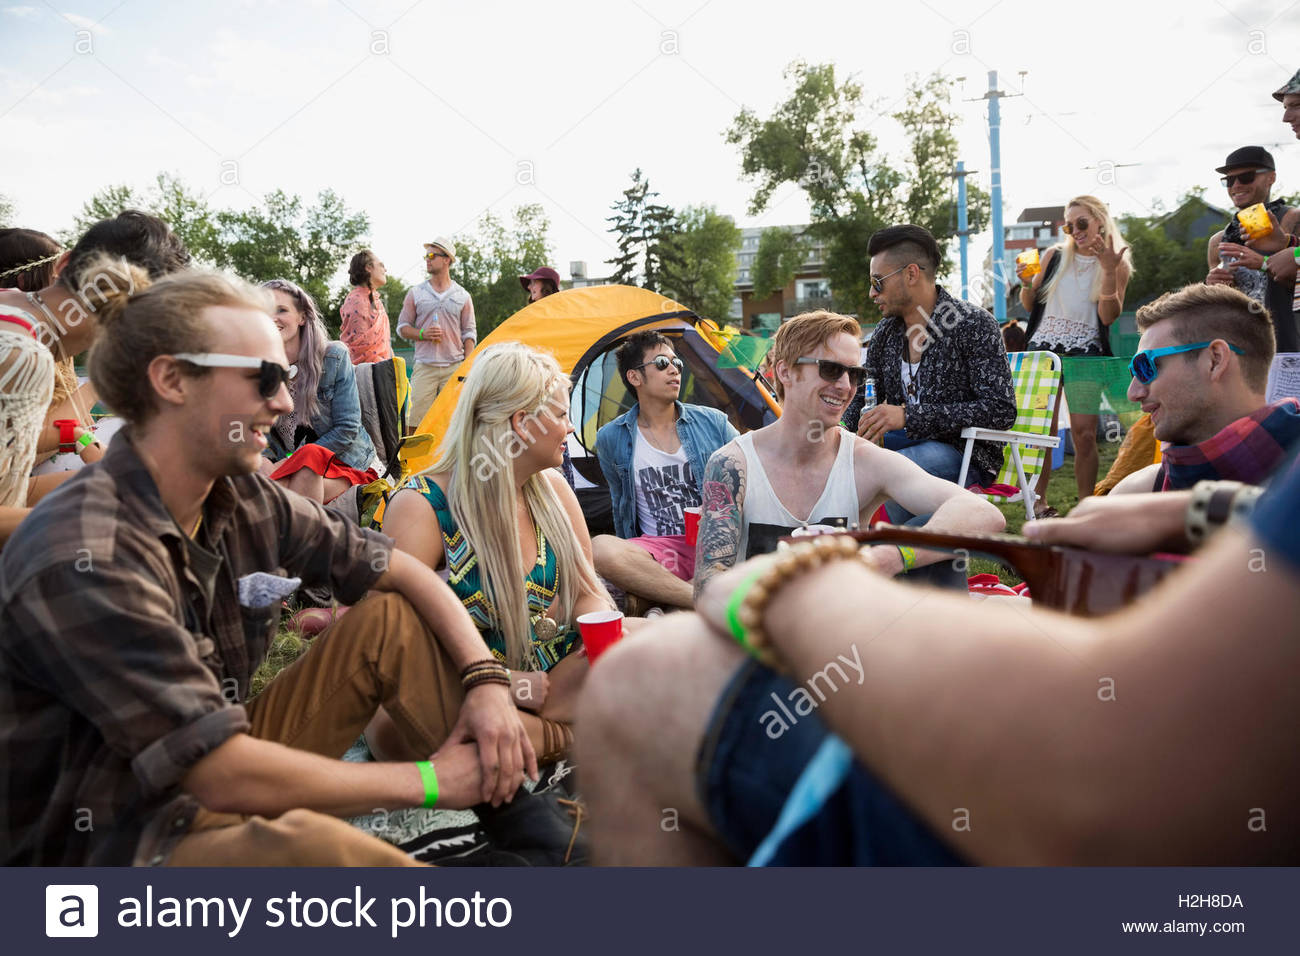 Young Friends hanging out at summer music festival camping Photo Stock